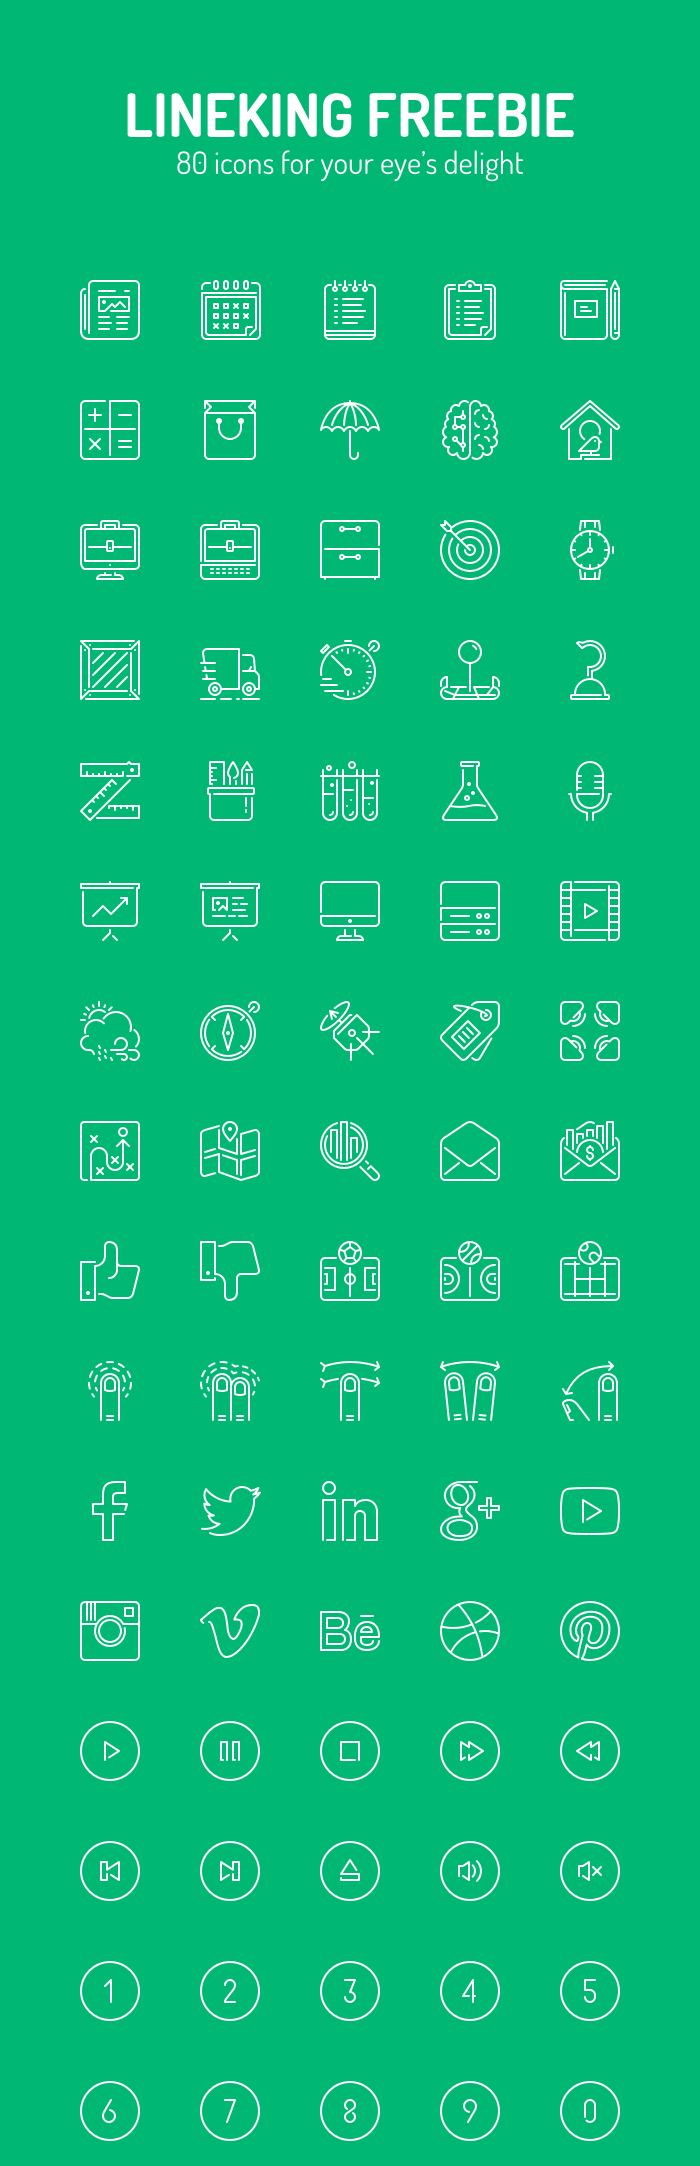 Free Sketch Vector Line Icons (80 Icons)